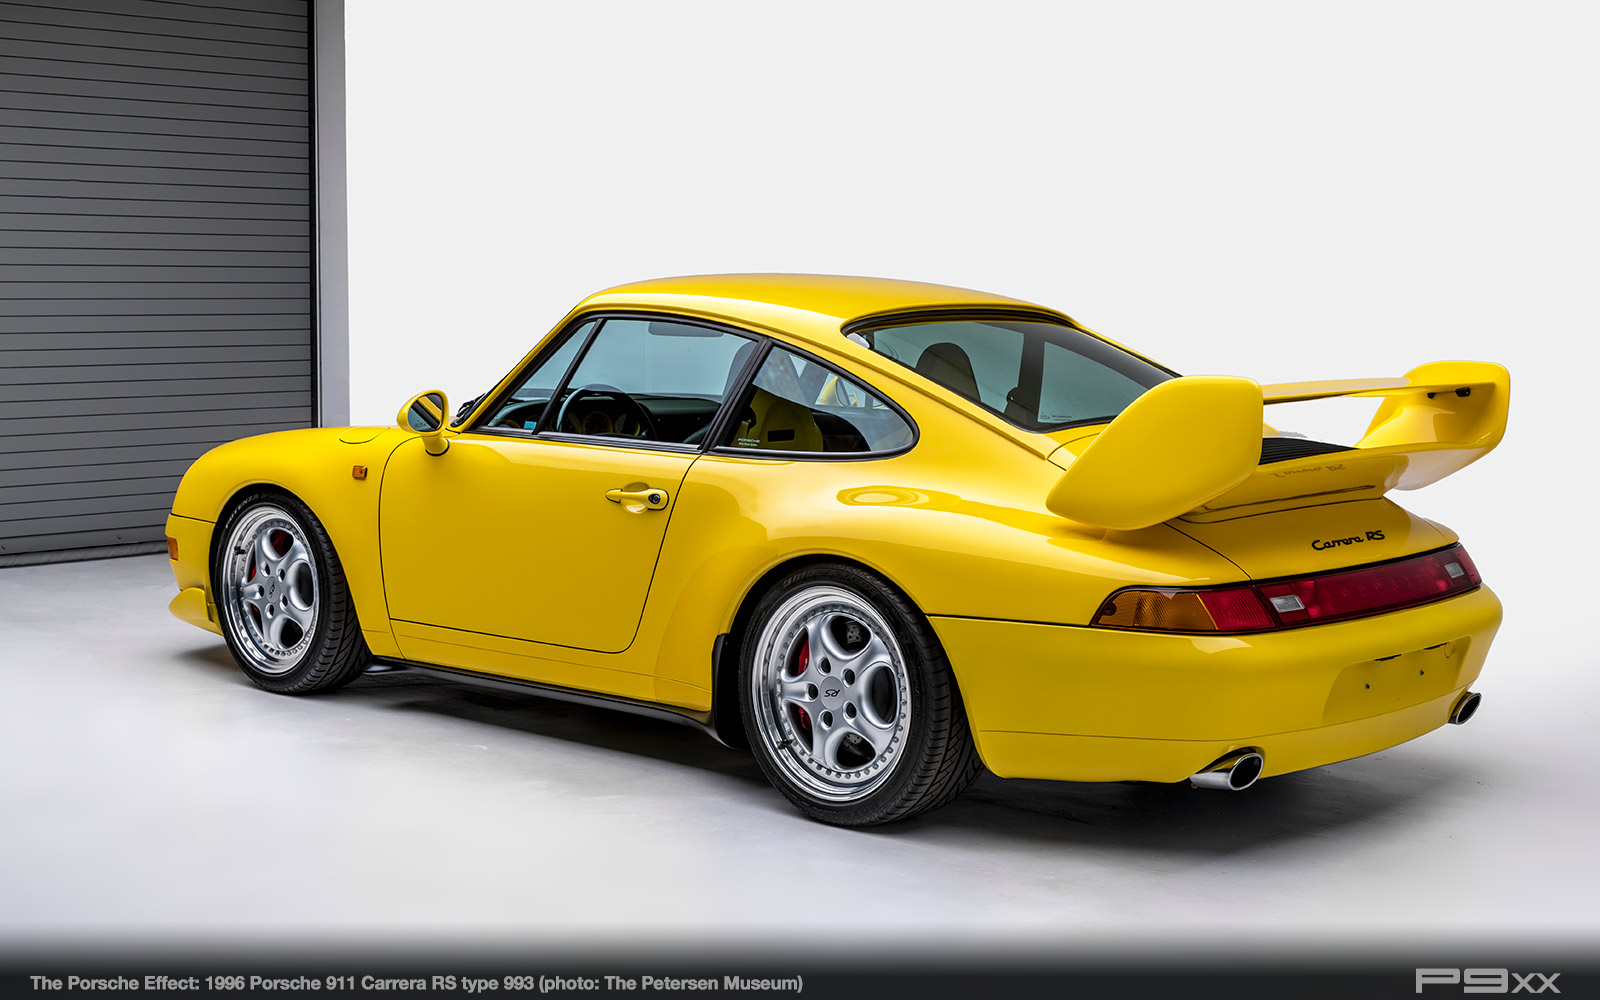 1996-911-Carrera-RS-993-Petersen-Automotive-Museum-The-Porsche-Effect290